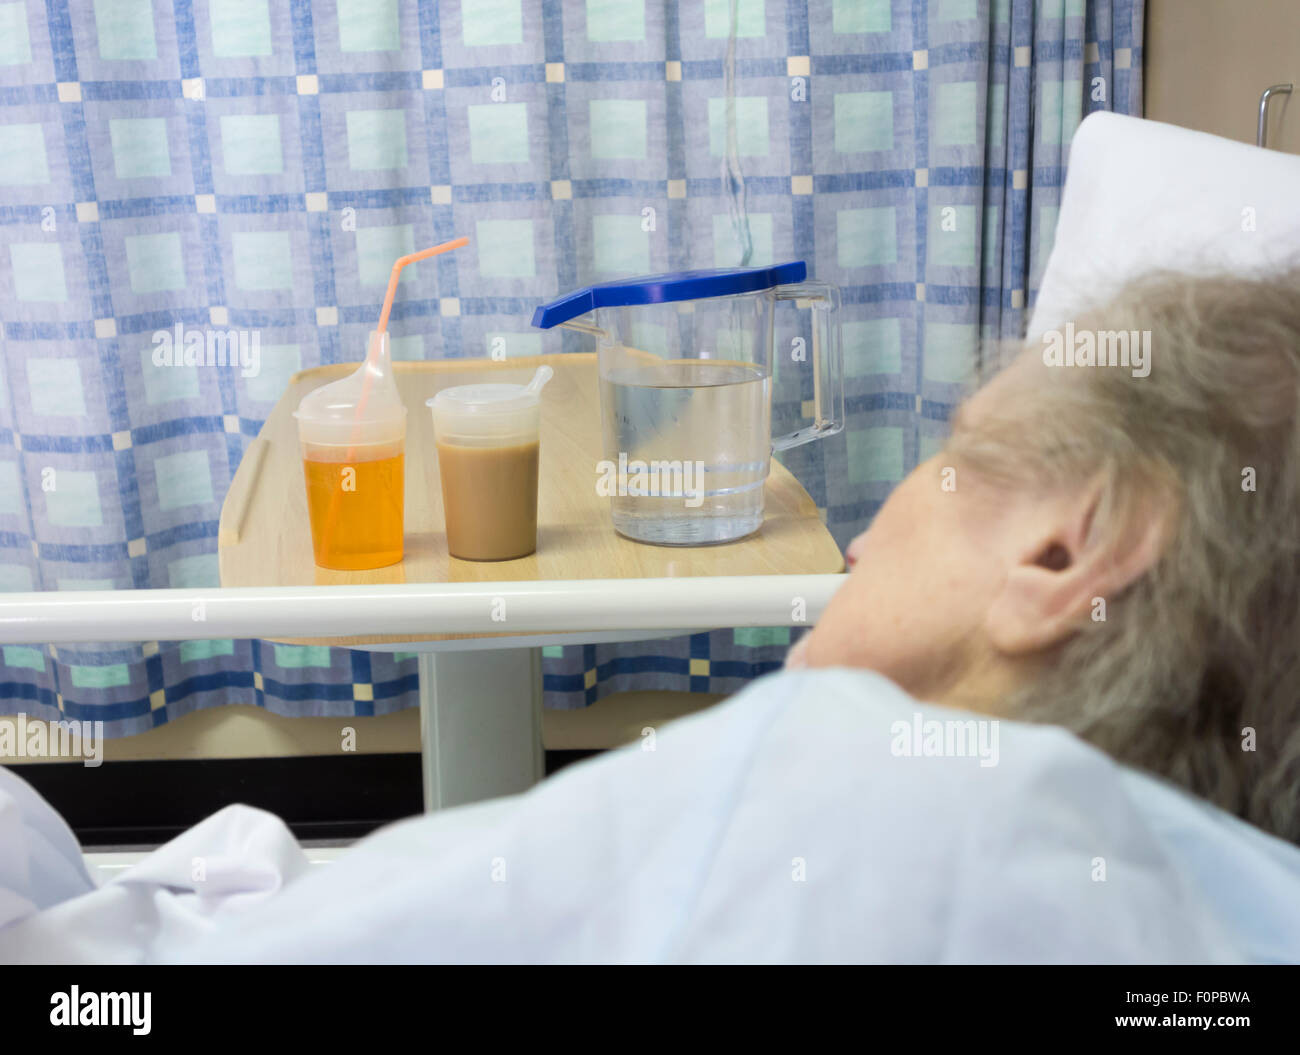 Elderly patient in her nineties in NHS hospital bed with drinks on bedside table. UK - Stock Image